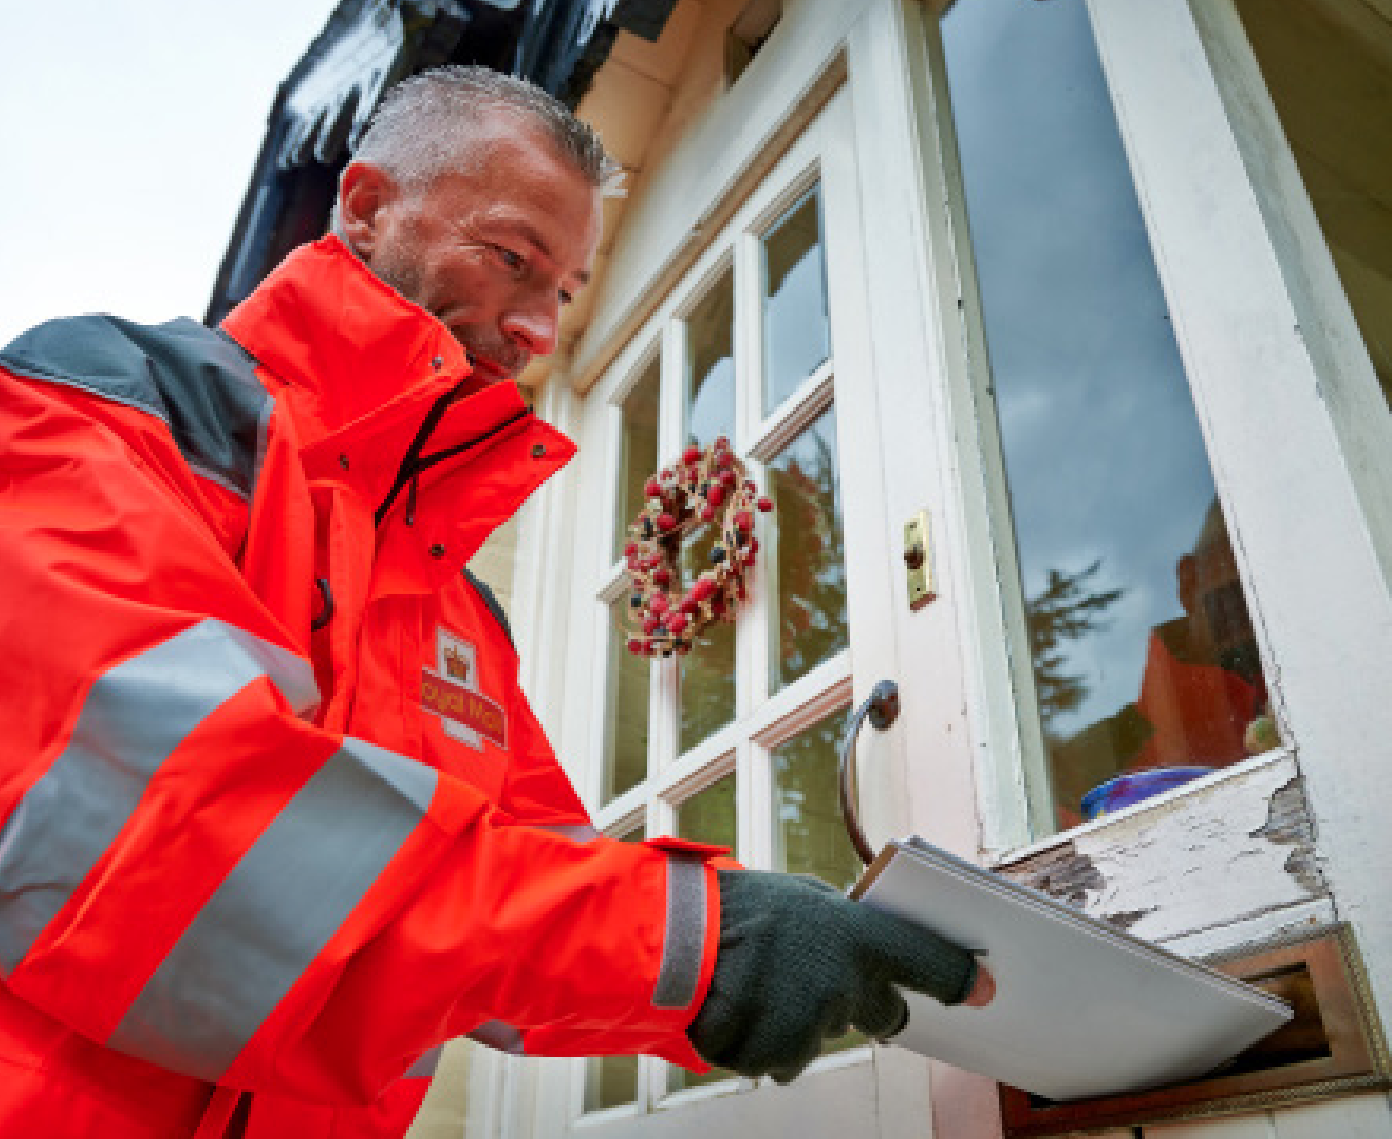 Above: The important thing for the card trade is that we safeguard an efficient postal service.